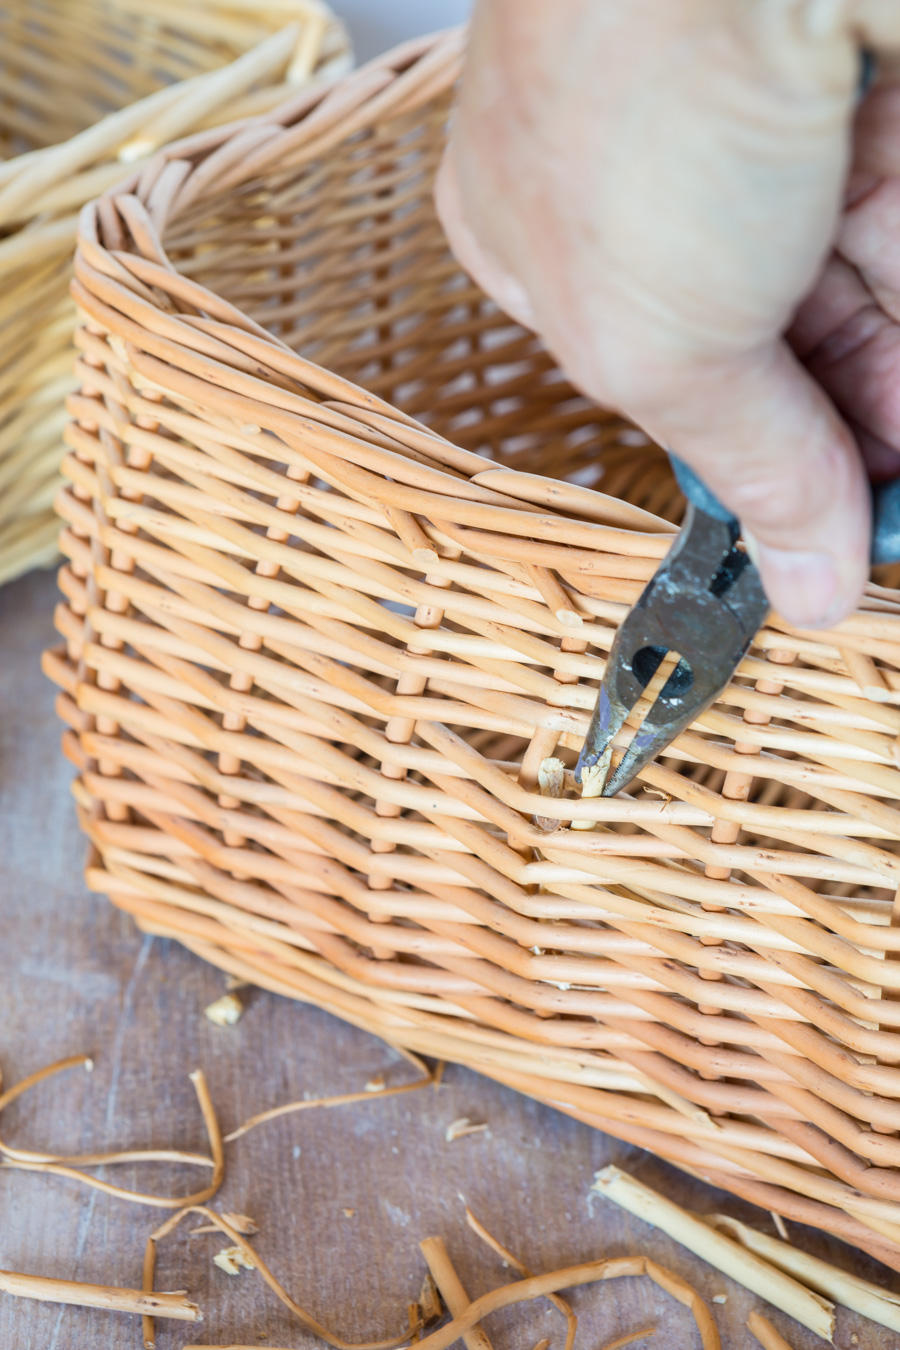 Removing handle and shim reeds on a wicker basket that will be used for cheap, but decorative storage